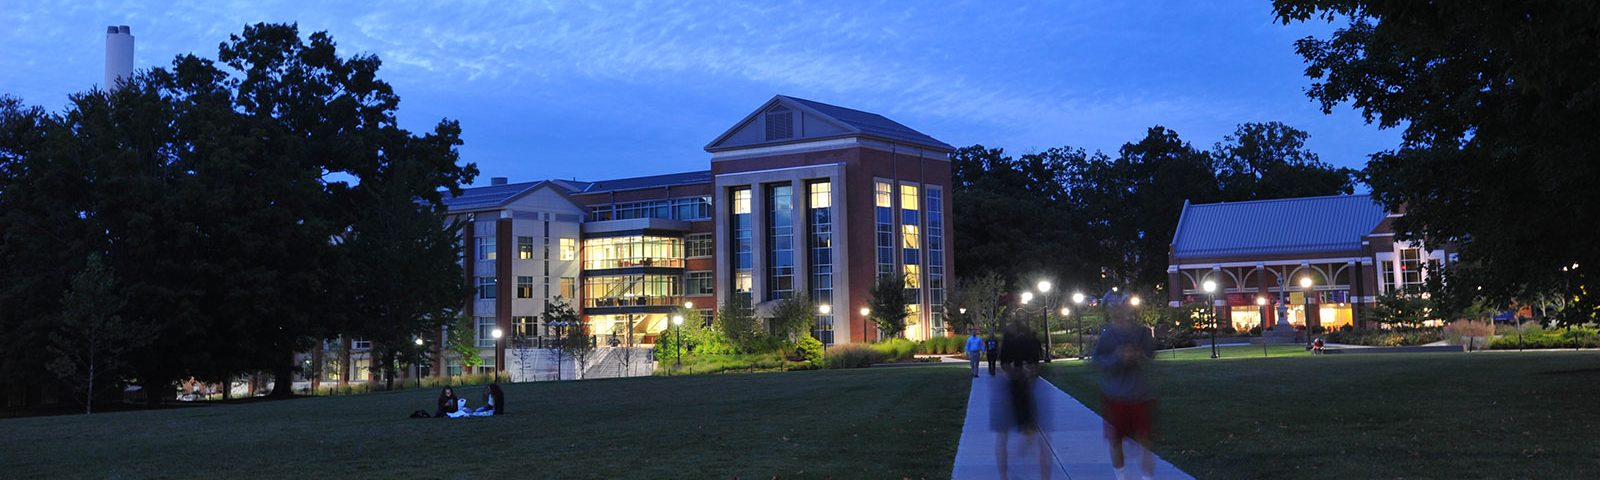 2020 Rankings Place Neag School Among Top 20 U.S. Publics - Image of Gentry Building at night